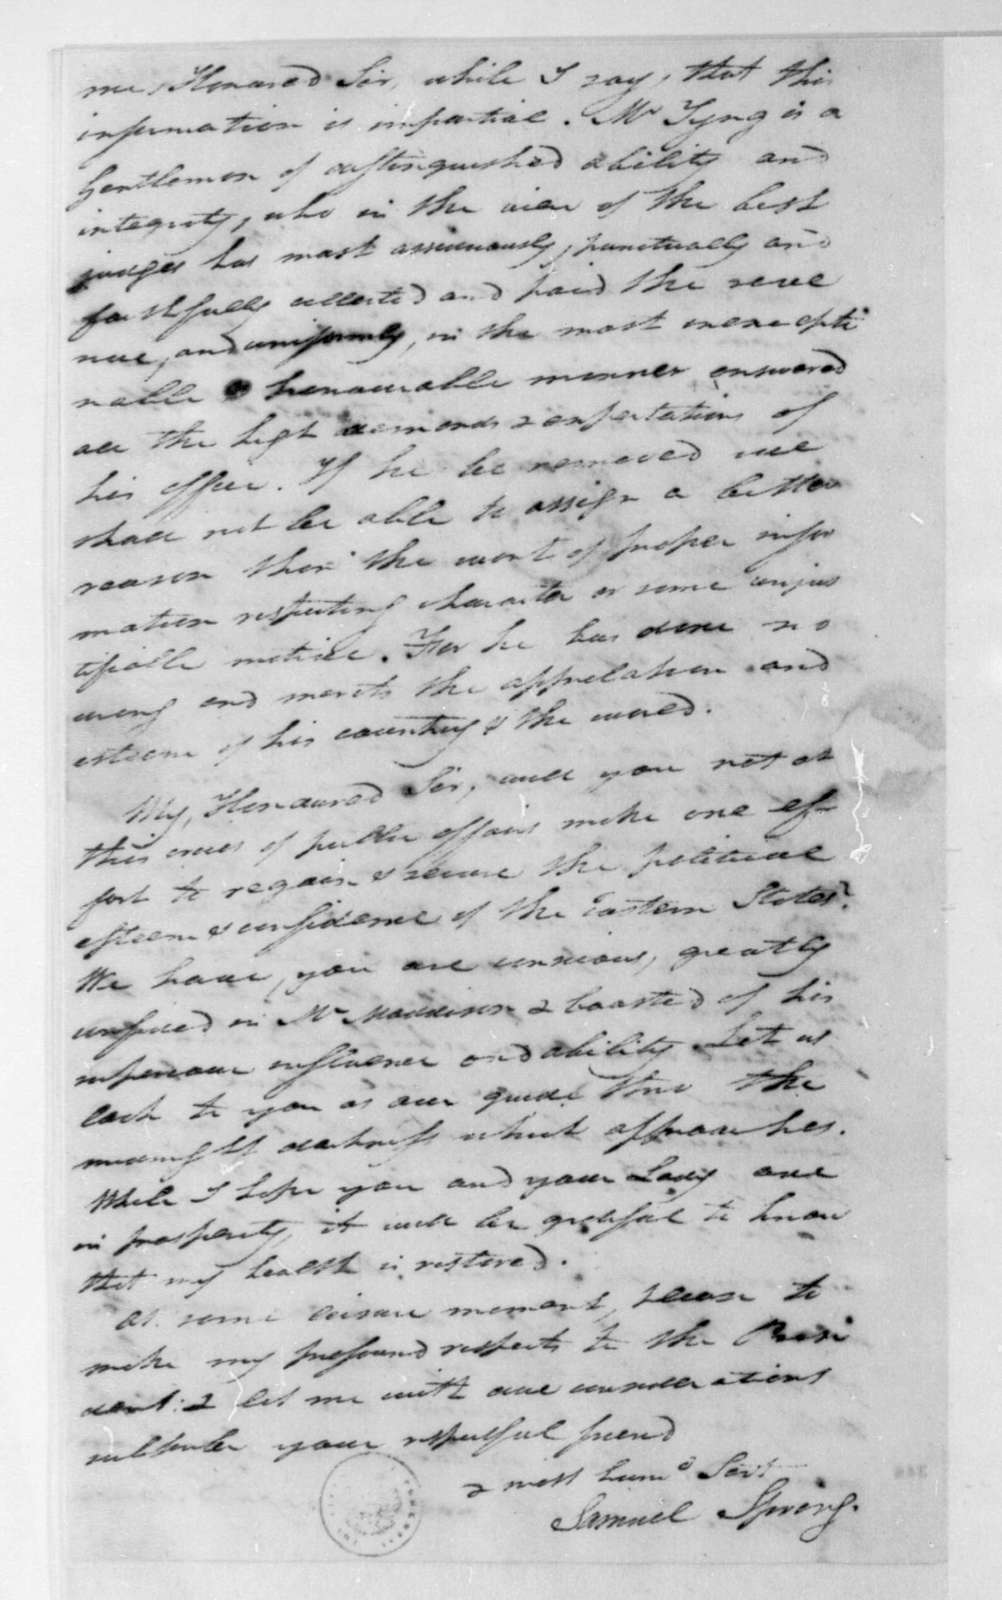 Samuel Spring to James Madison, October 20, 1801.